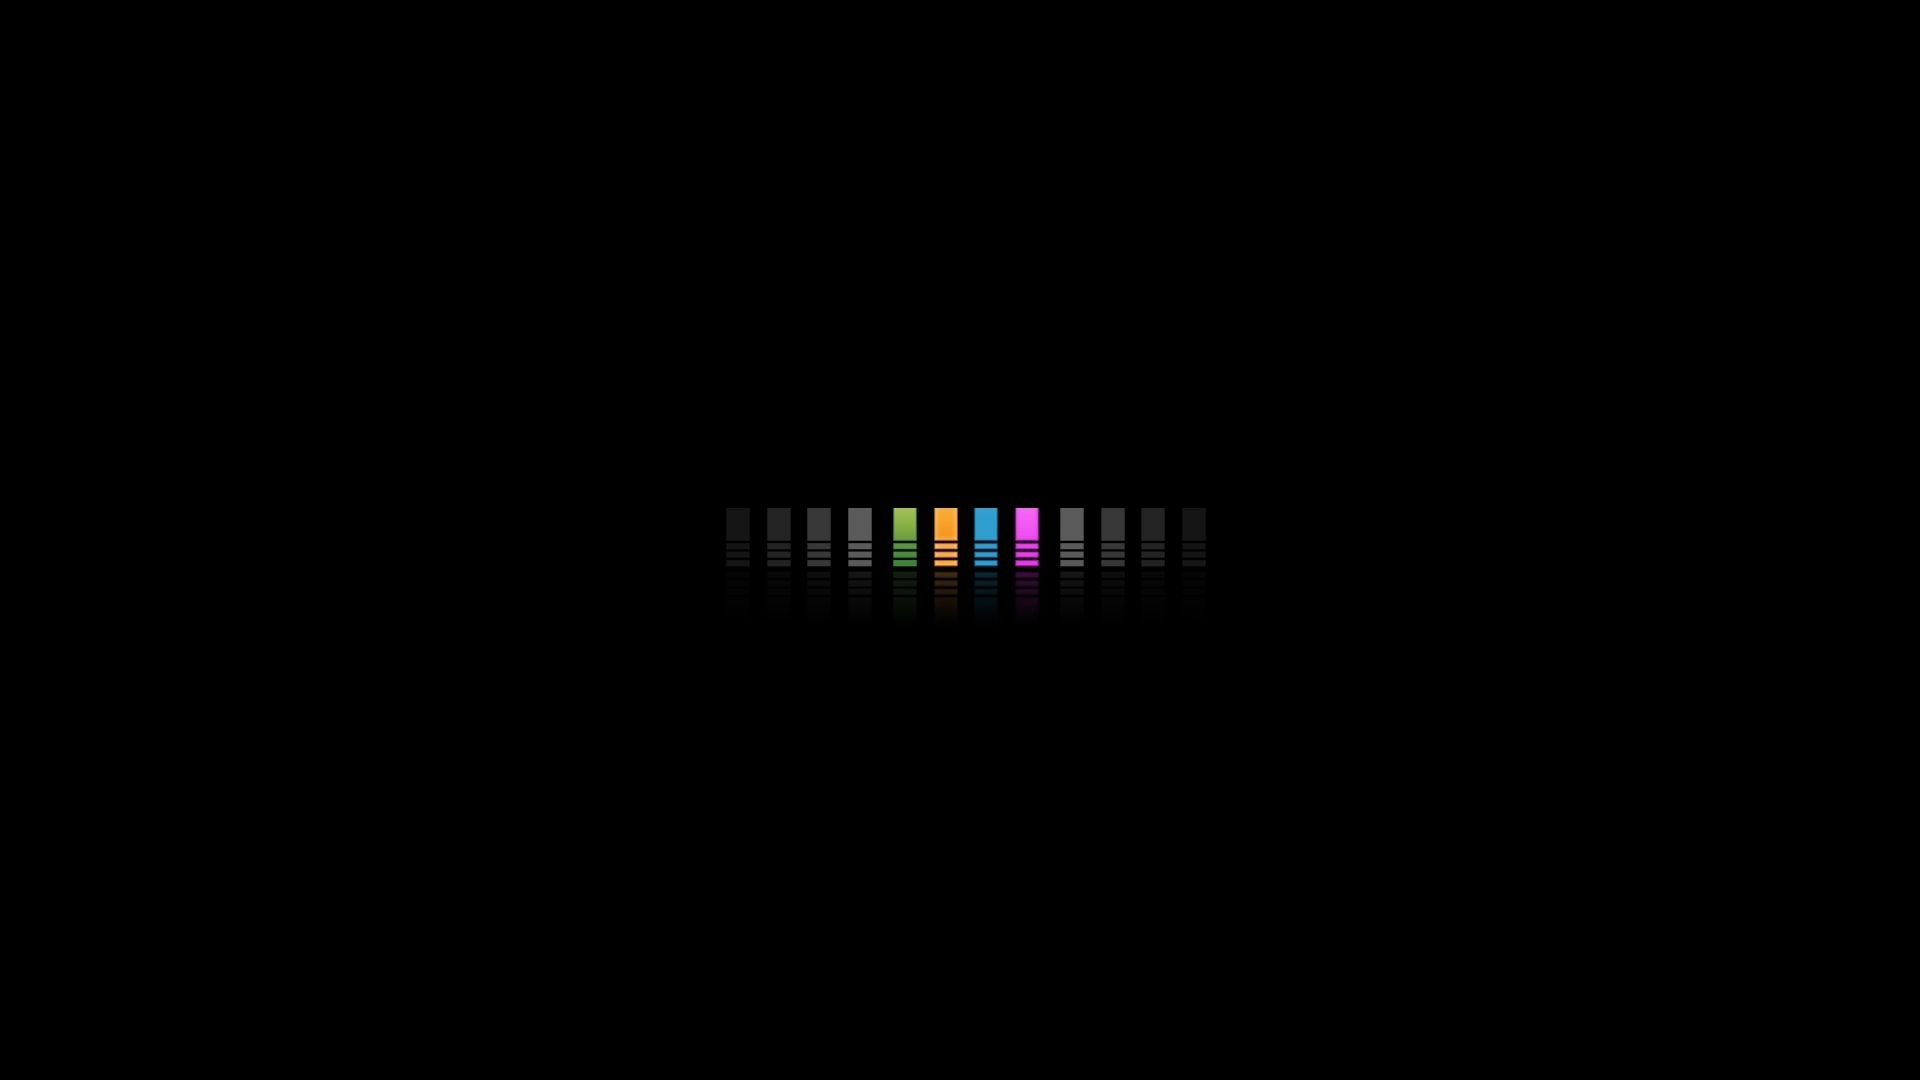 loading Black background